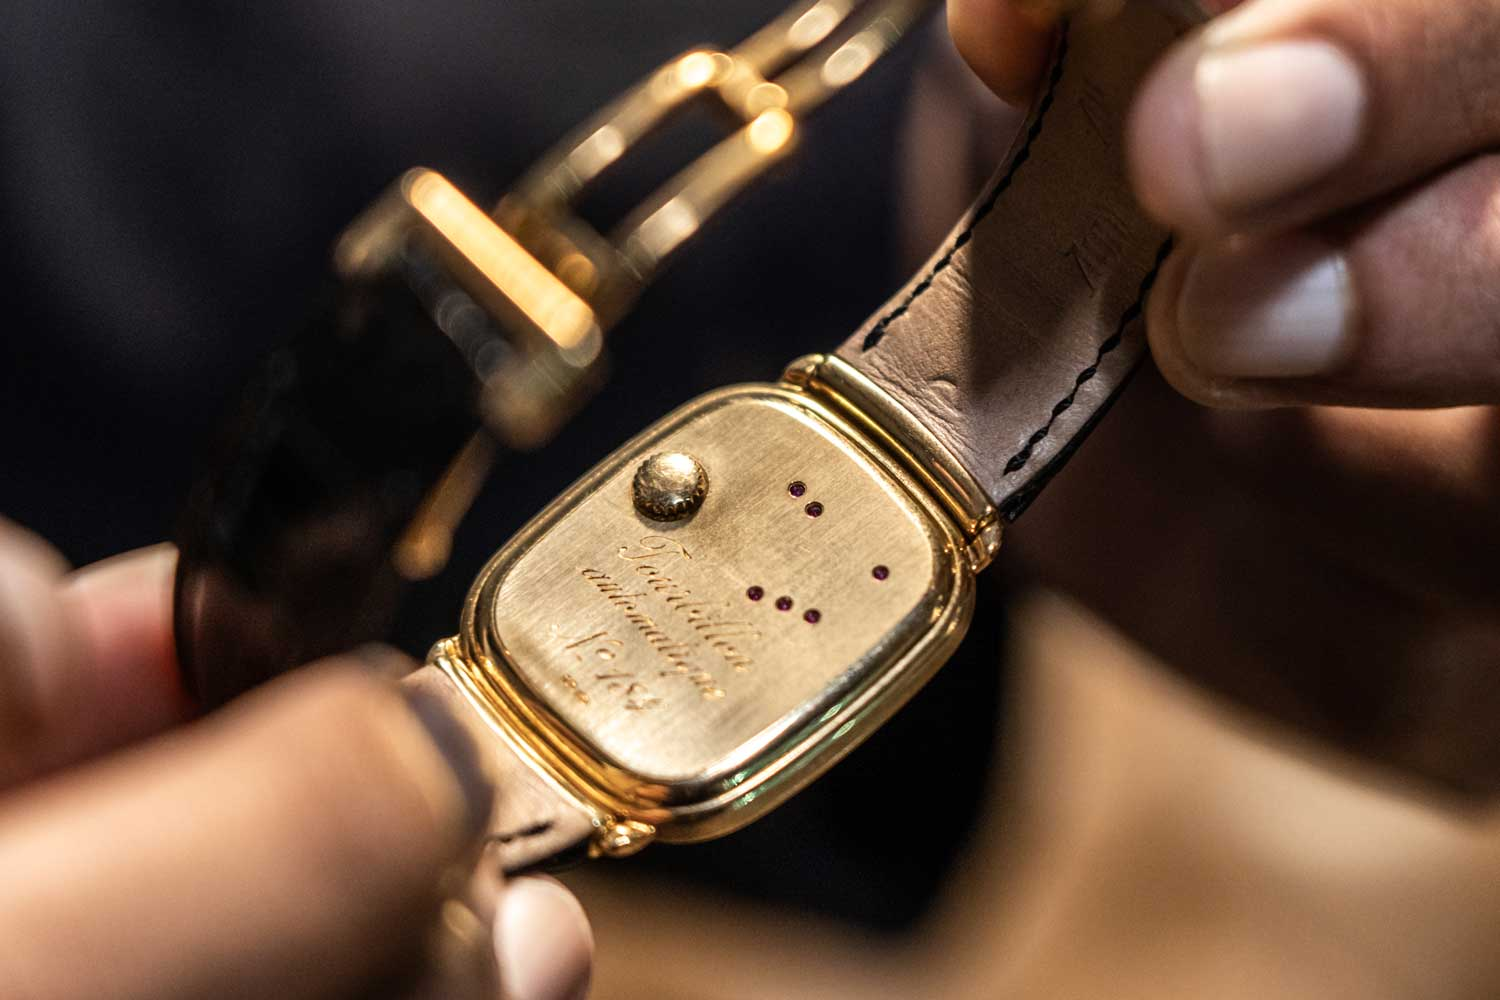 The 1986 Jacqueline Dimier designed Audemars Piguet ultra-thin automatic tourbillon had its crown on the back of the watch; rubies for the gear train pinions are actually visible from the backcase (©Revolution)